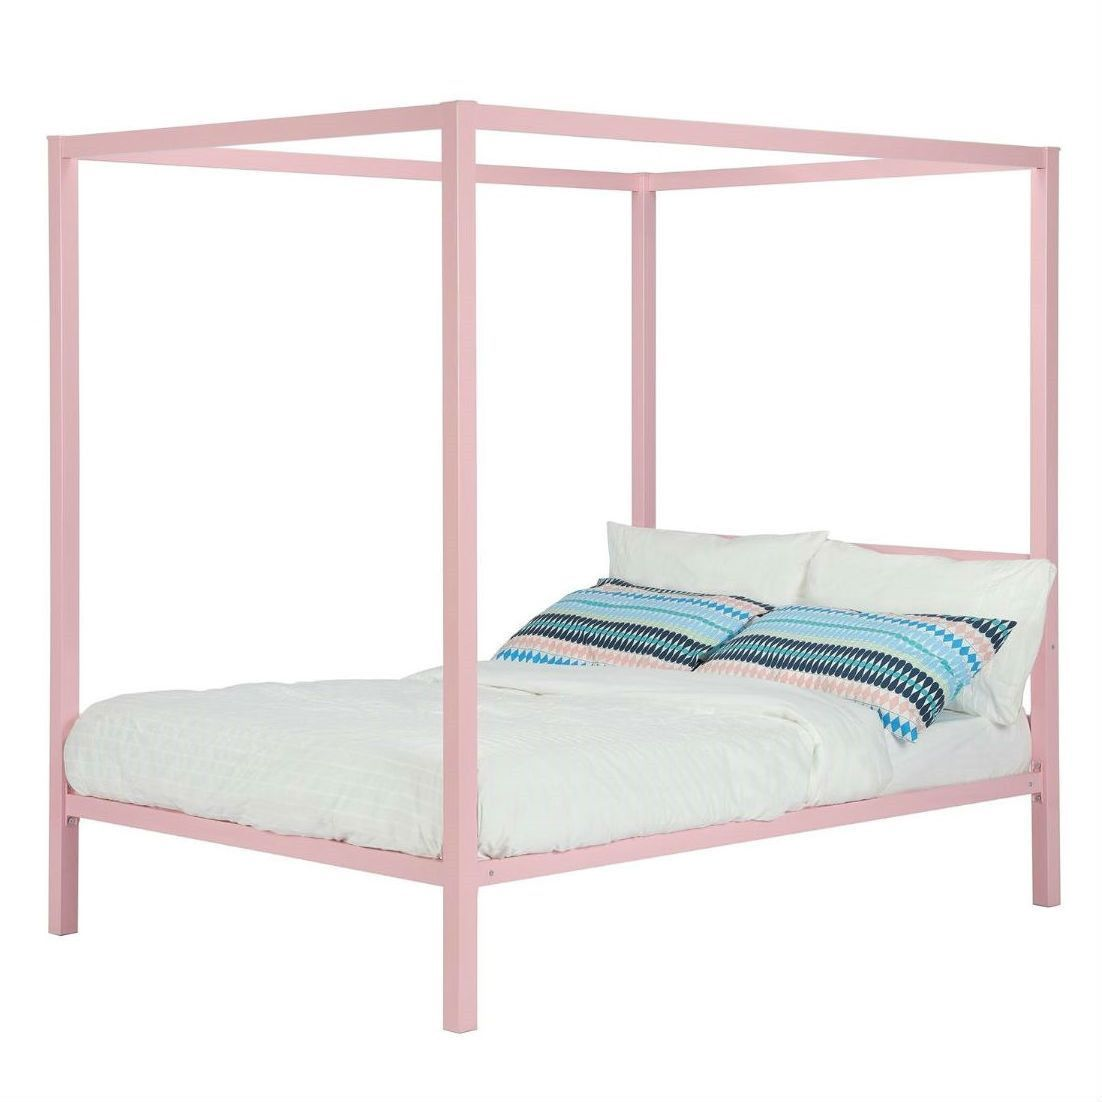 Twin Size Metal Platform Canopy Bed Frame In Pink Great For Kids